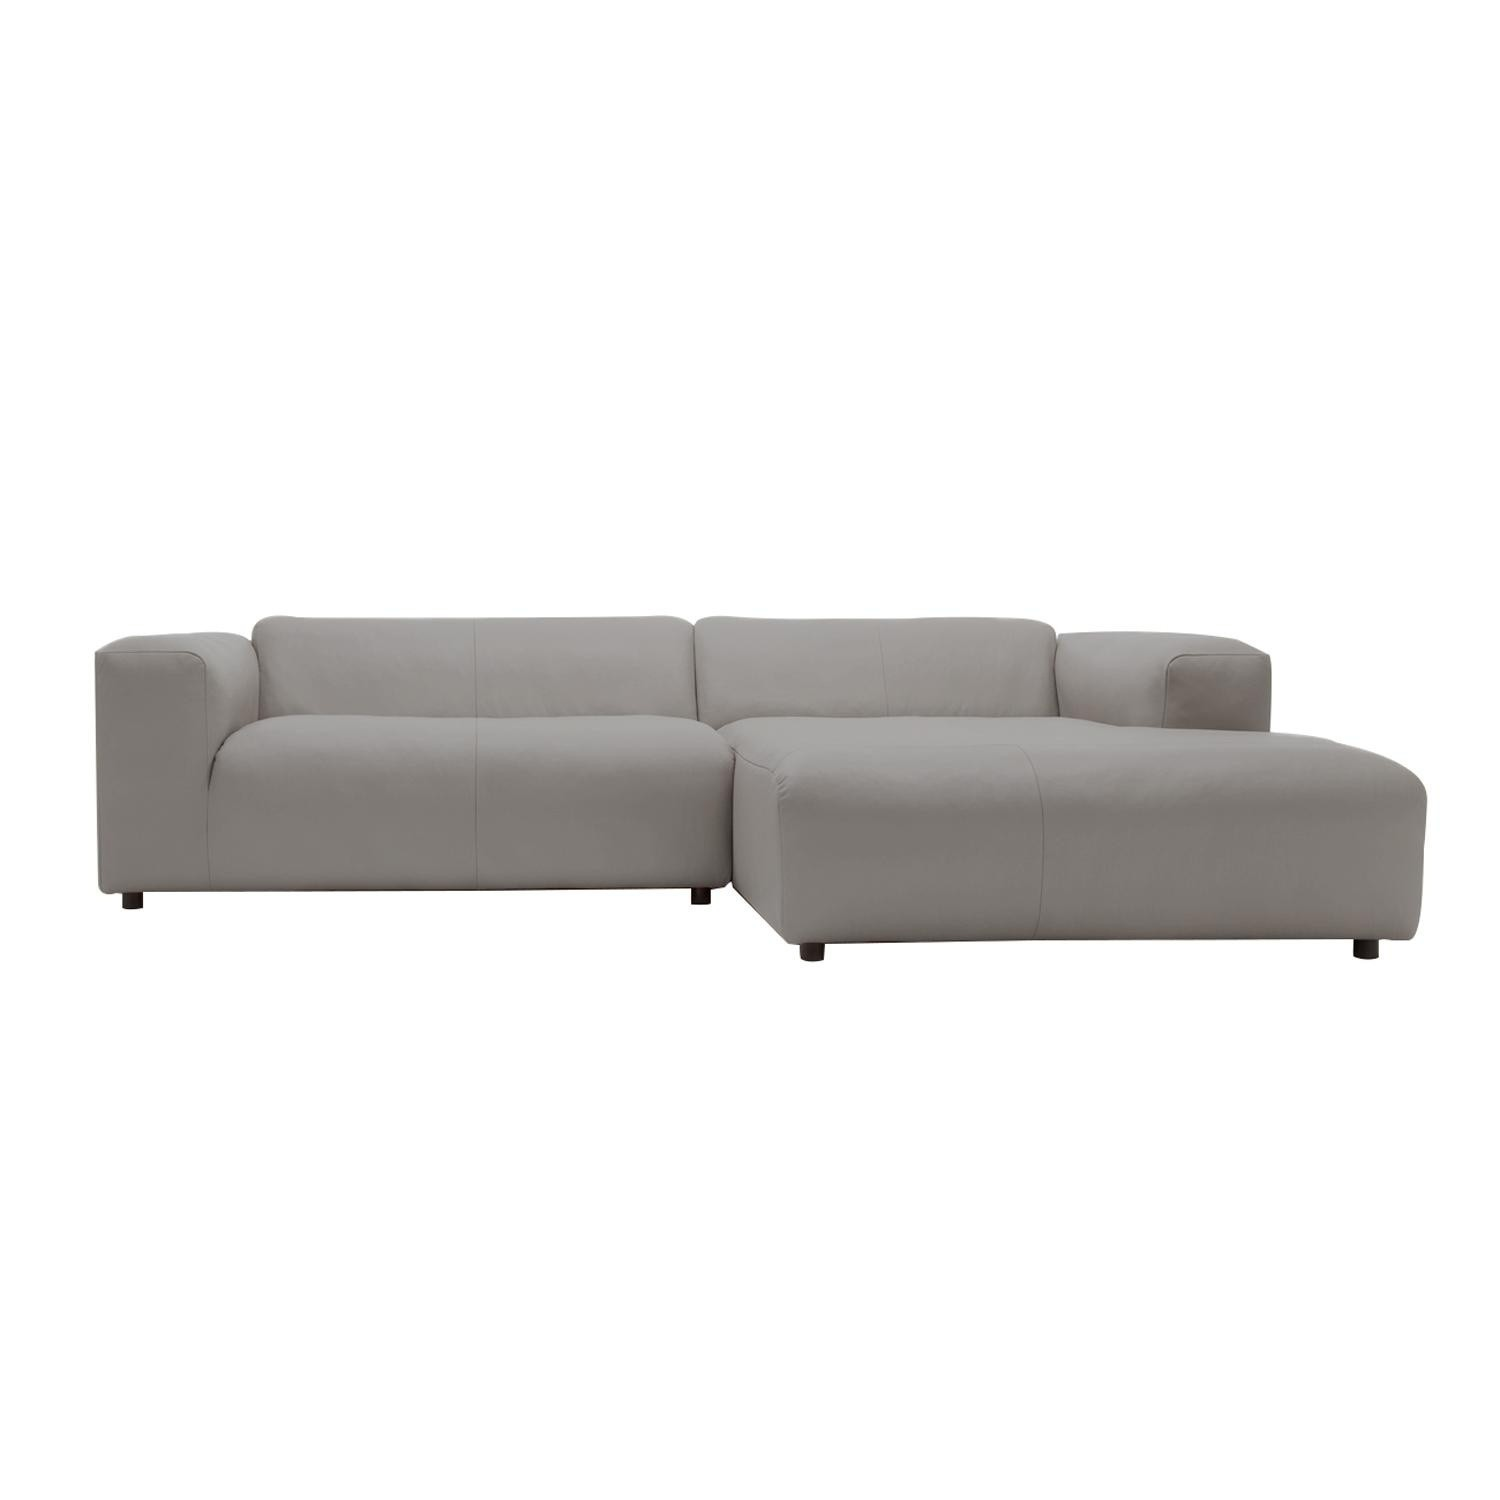 Freistil Rolf Benz Freistil 187 Loungesofa 260x185cm Ambientedirect